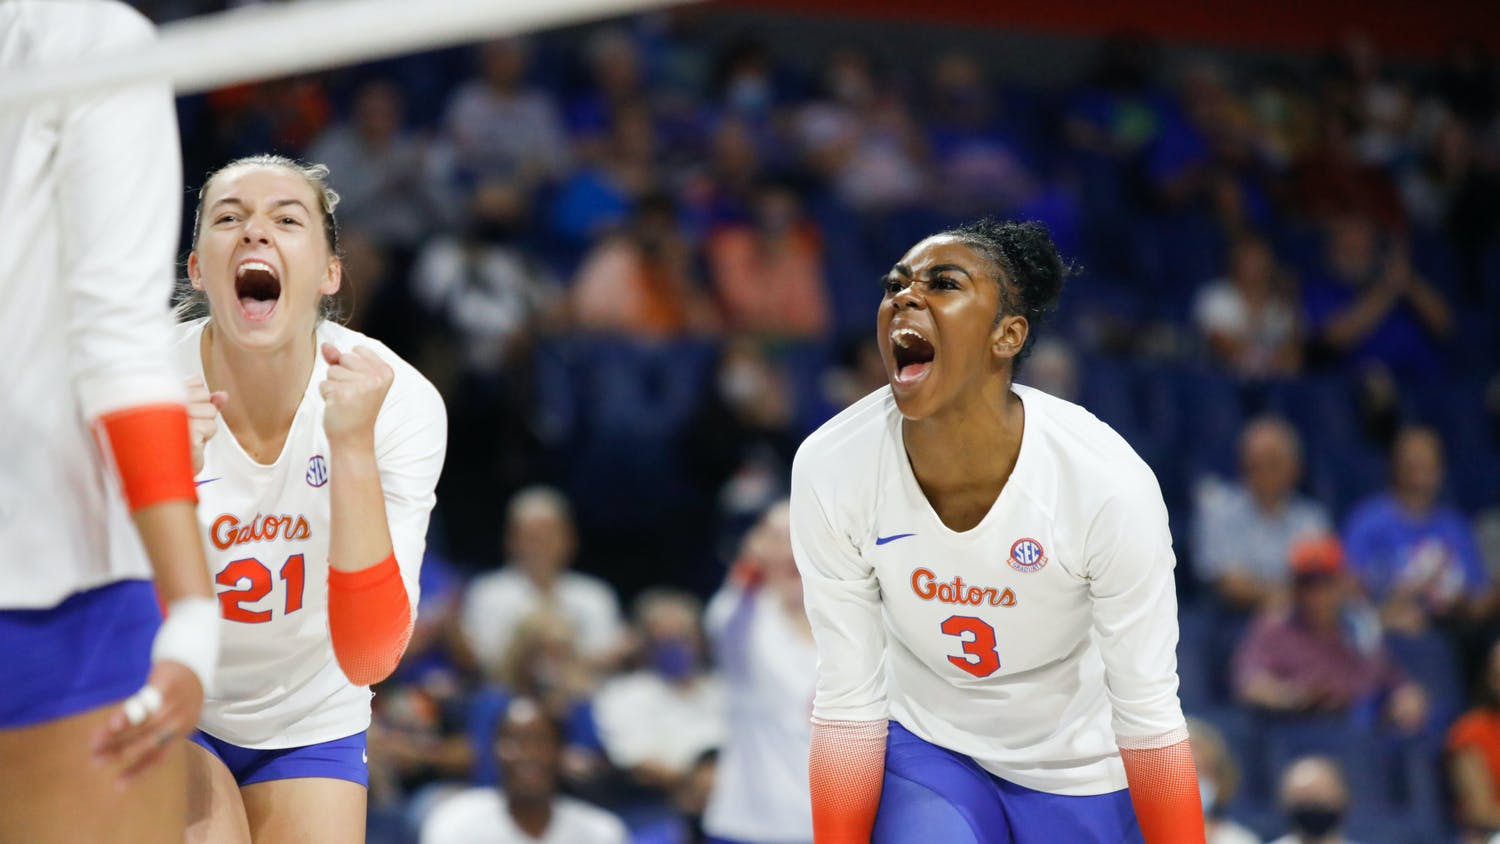 Florida's T'ara Ceasar and Marlie Monserez celebrate a point in Florida's game against Mississippi State on Sept. 24.